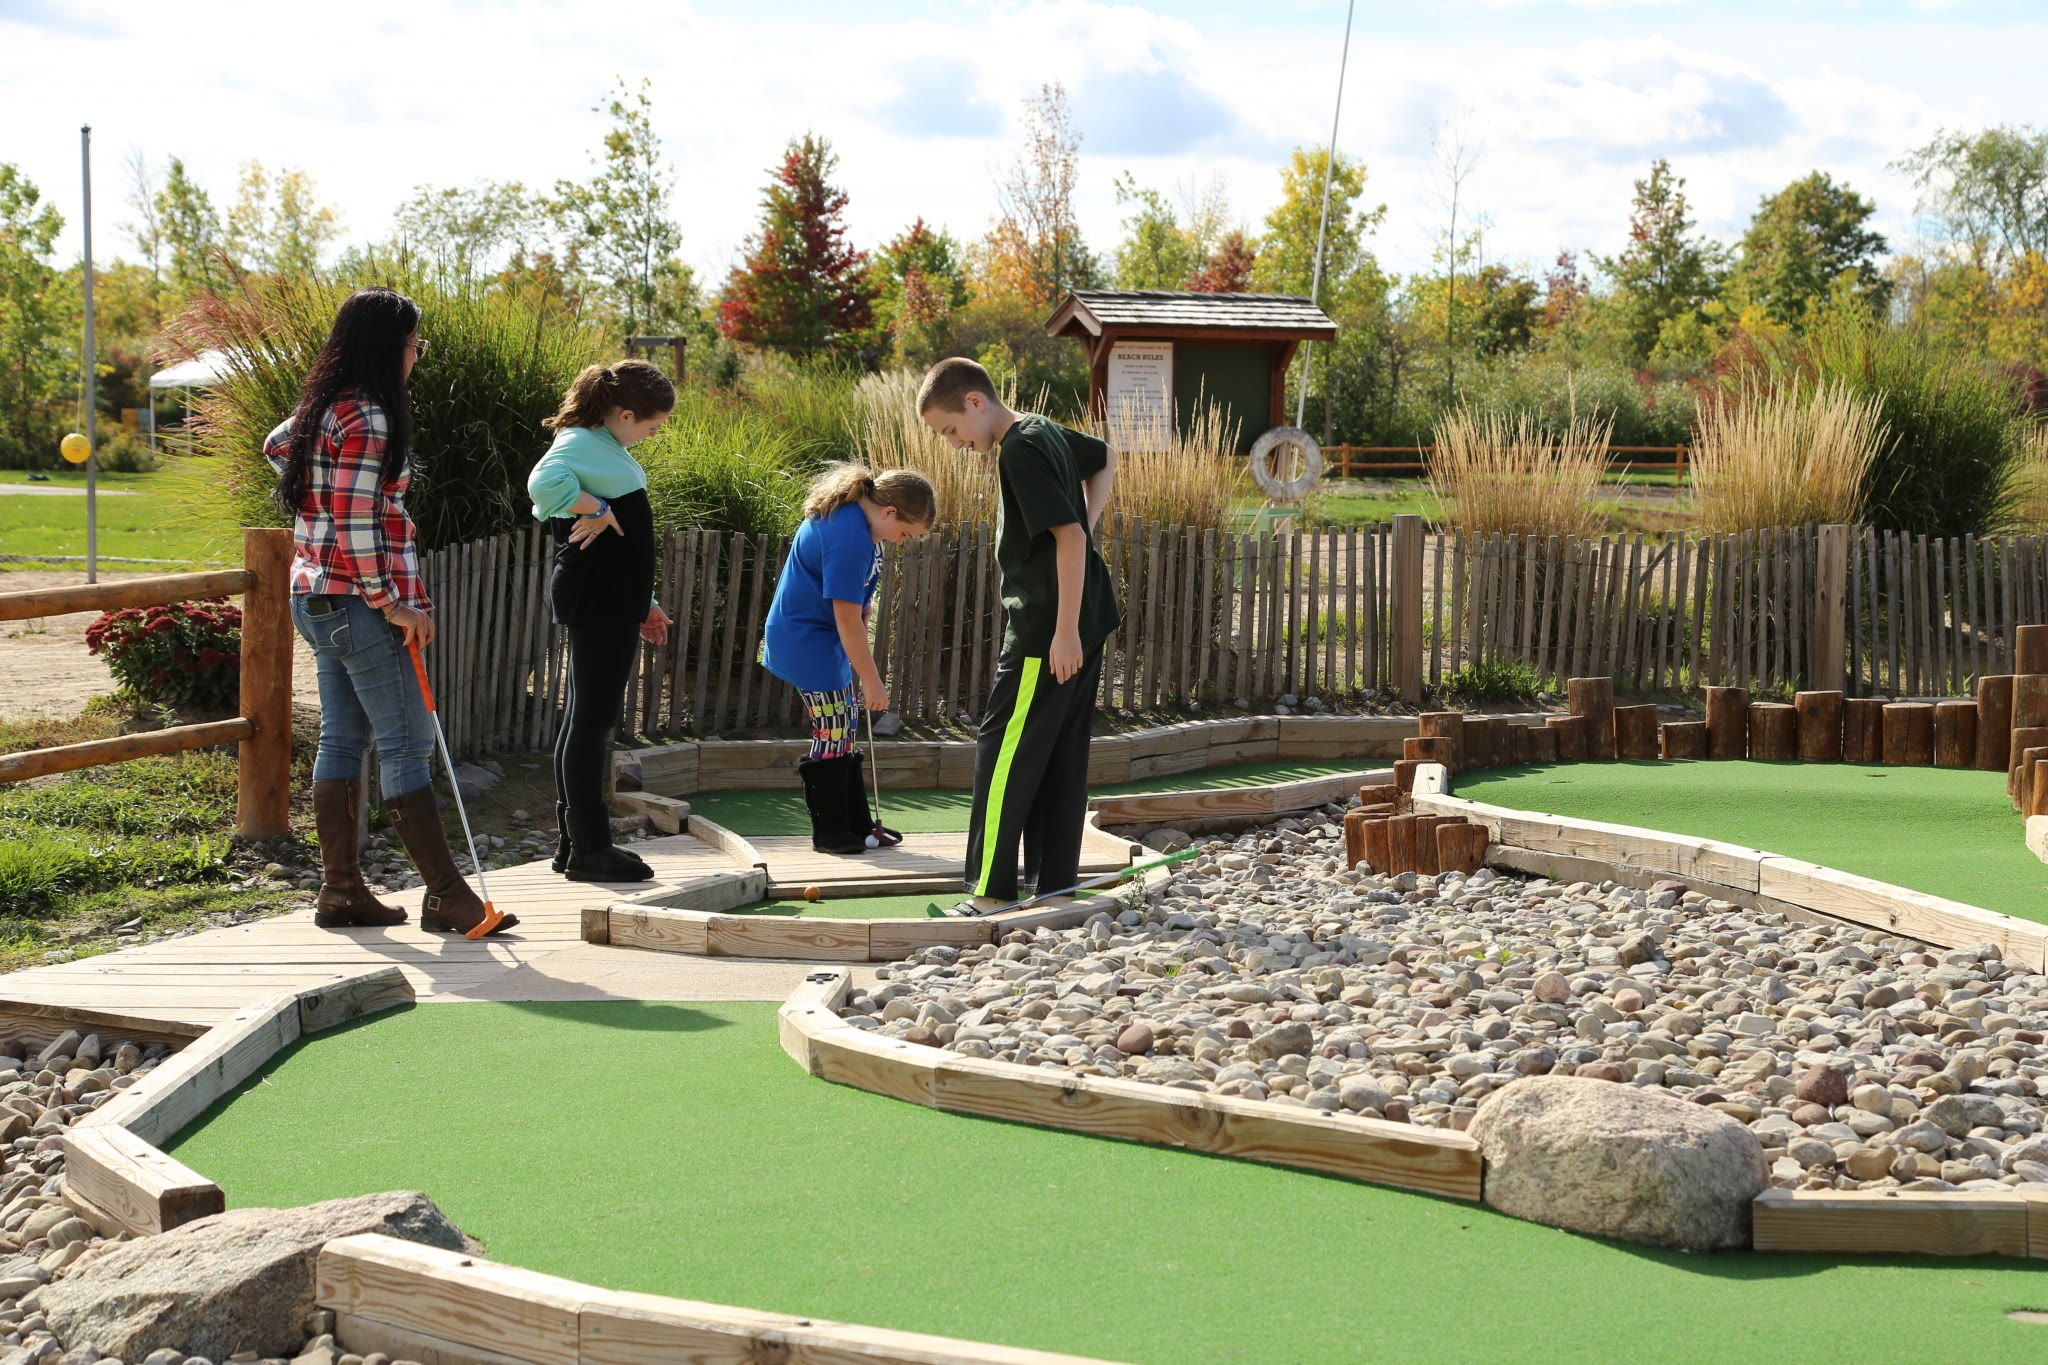 people playing mini golf